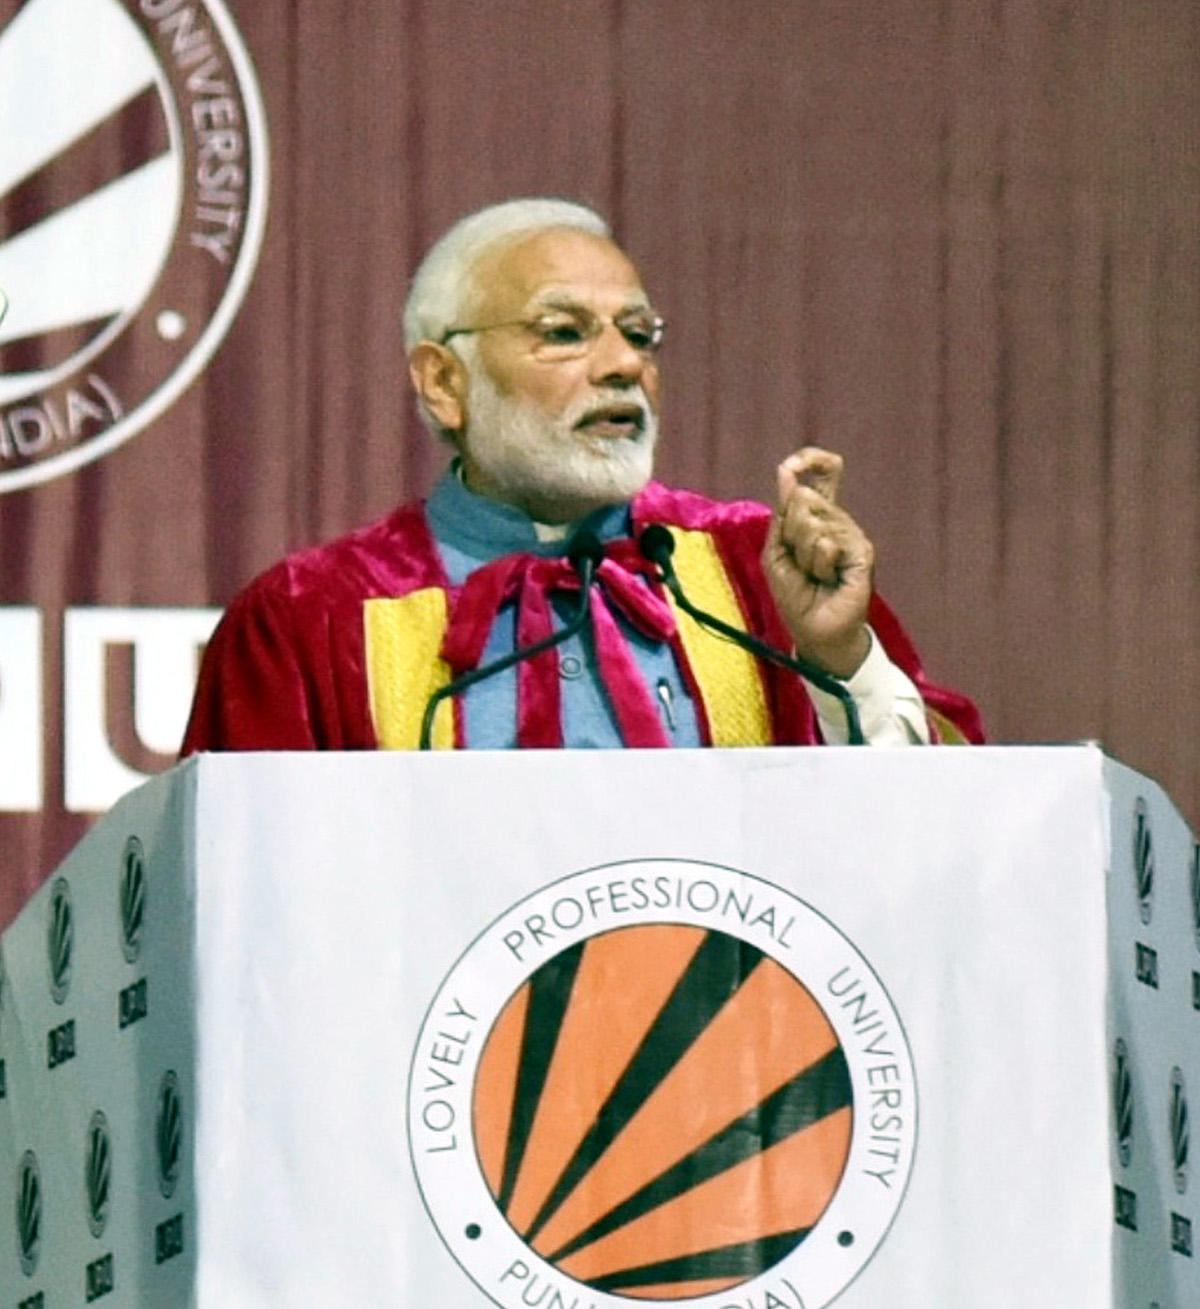 Prime Minister, Narendra Modi delivering the inaugural address at the 106th session of the Indian Science Congress, at Jalandhar, Punjab on Thursday.